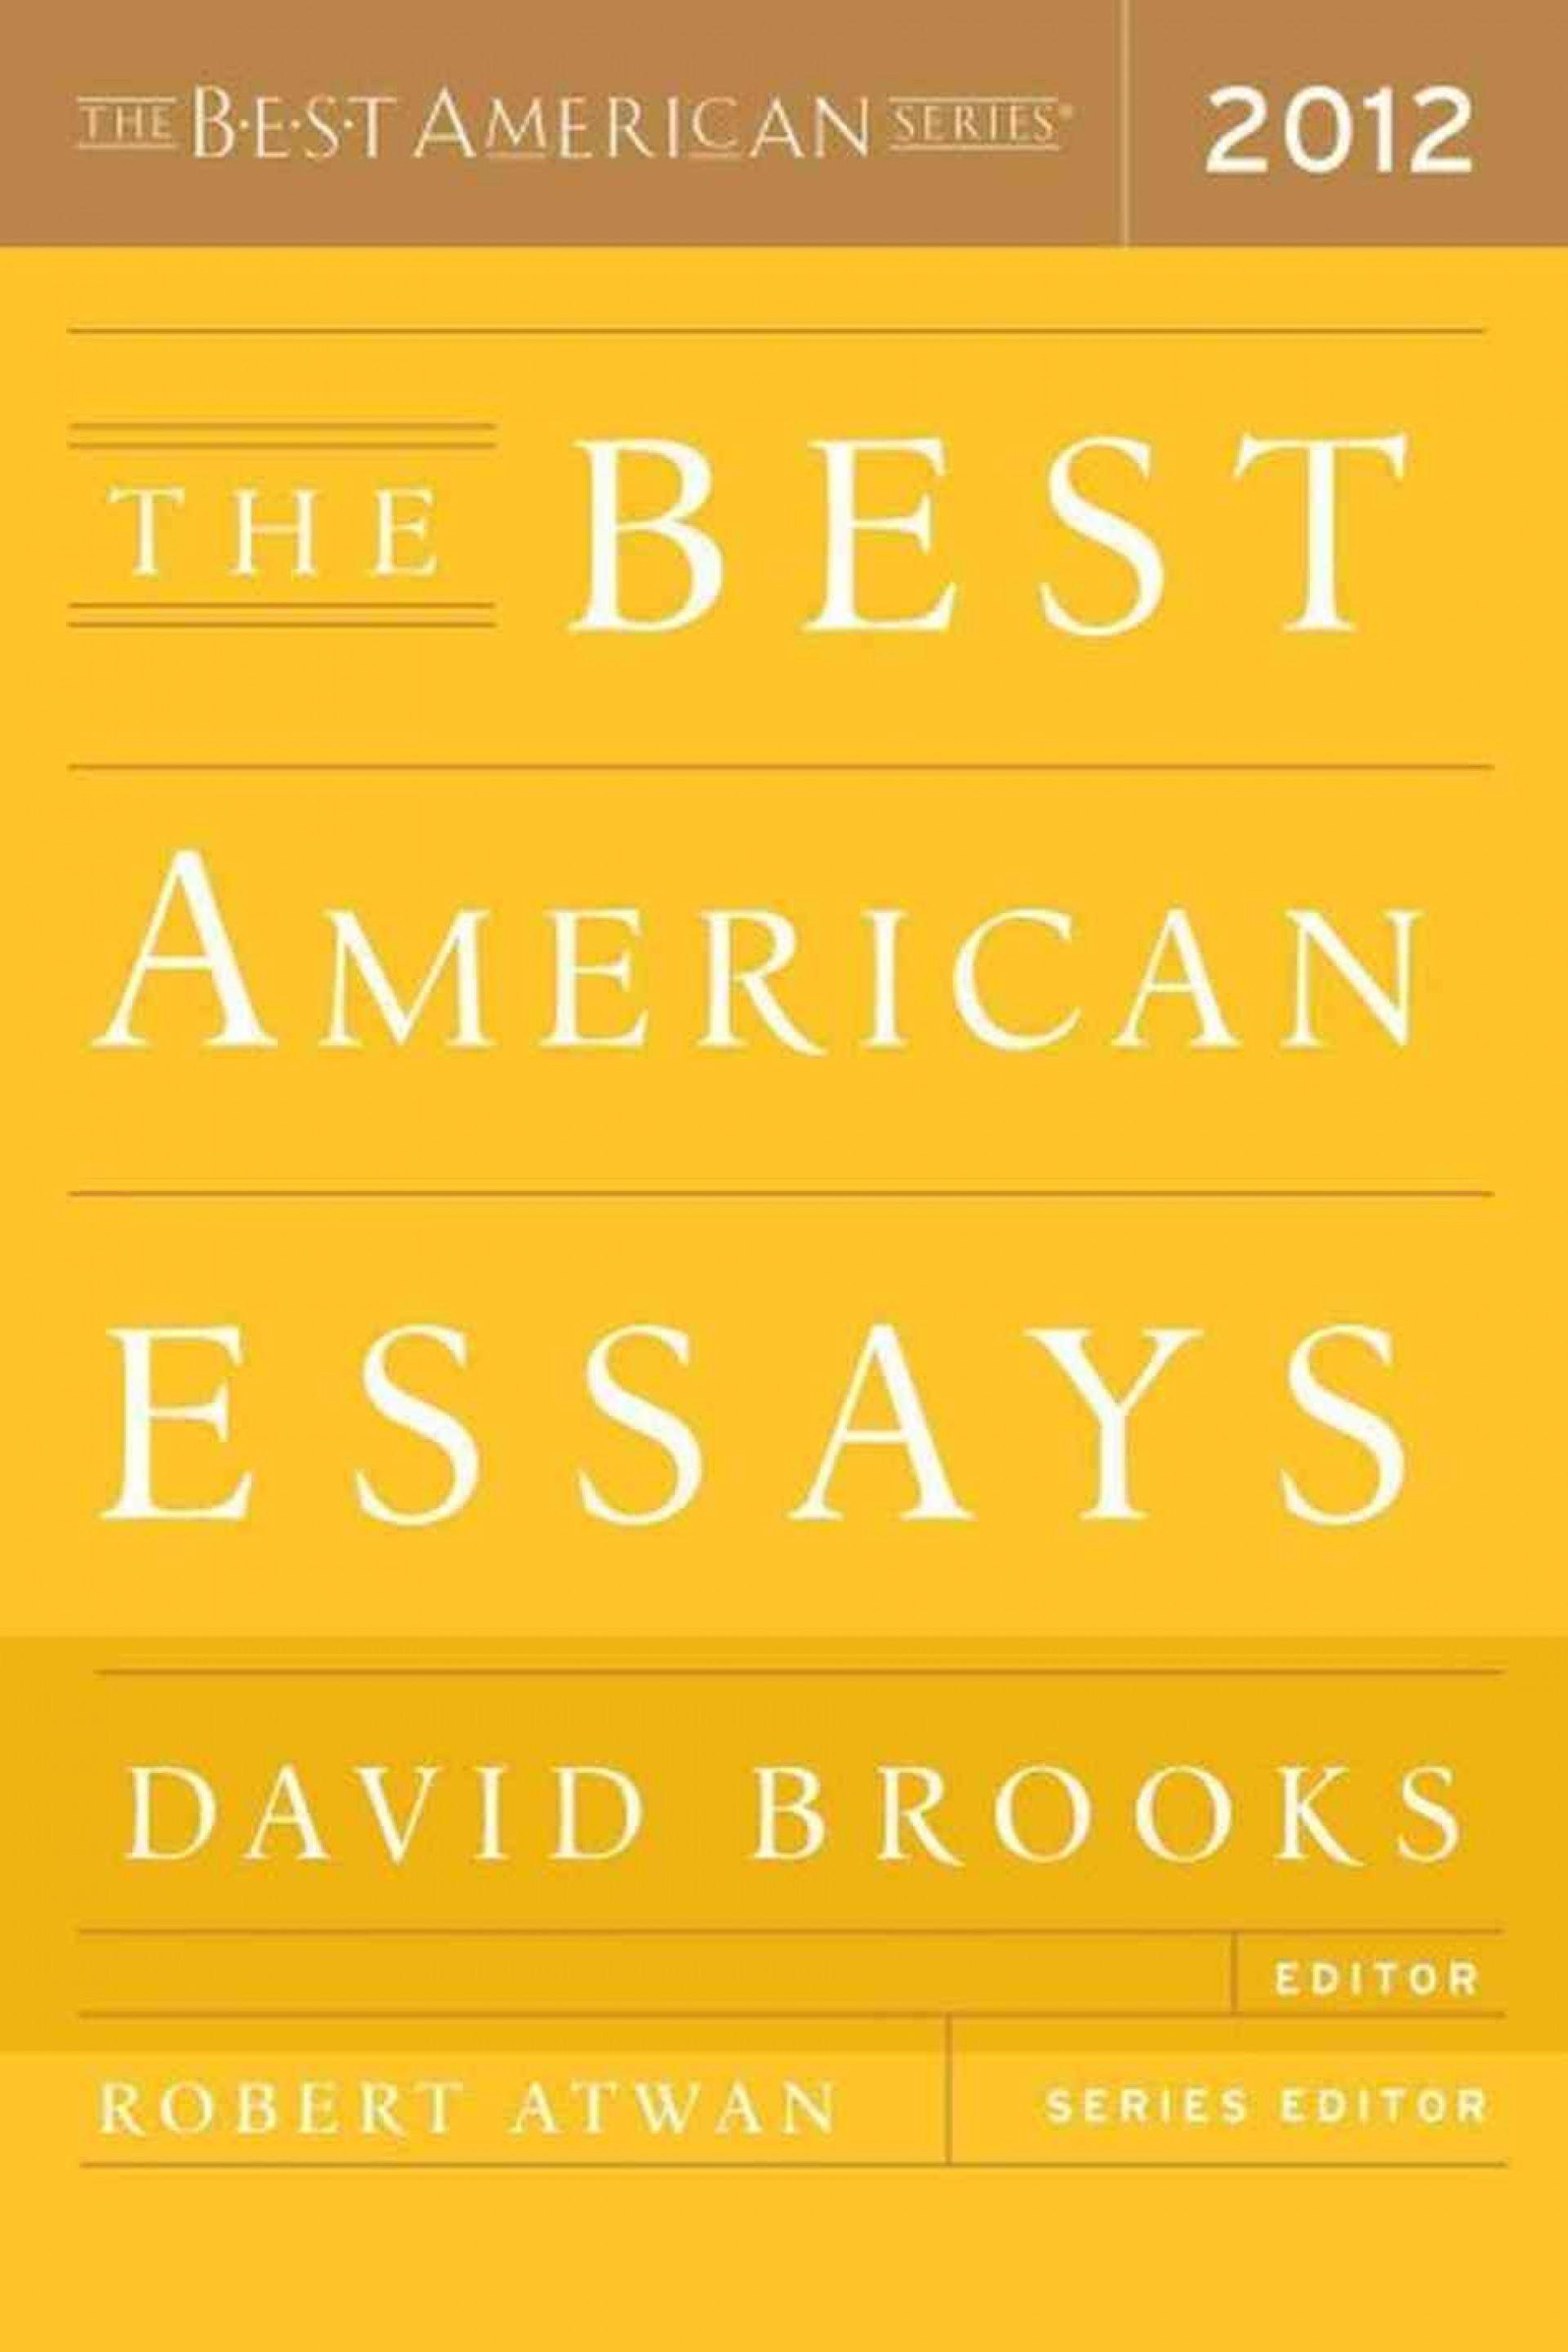 007 Best American Essays 2012 Essay Astounding 2017 Submissions Pdf Free Download 1920